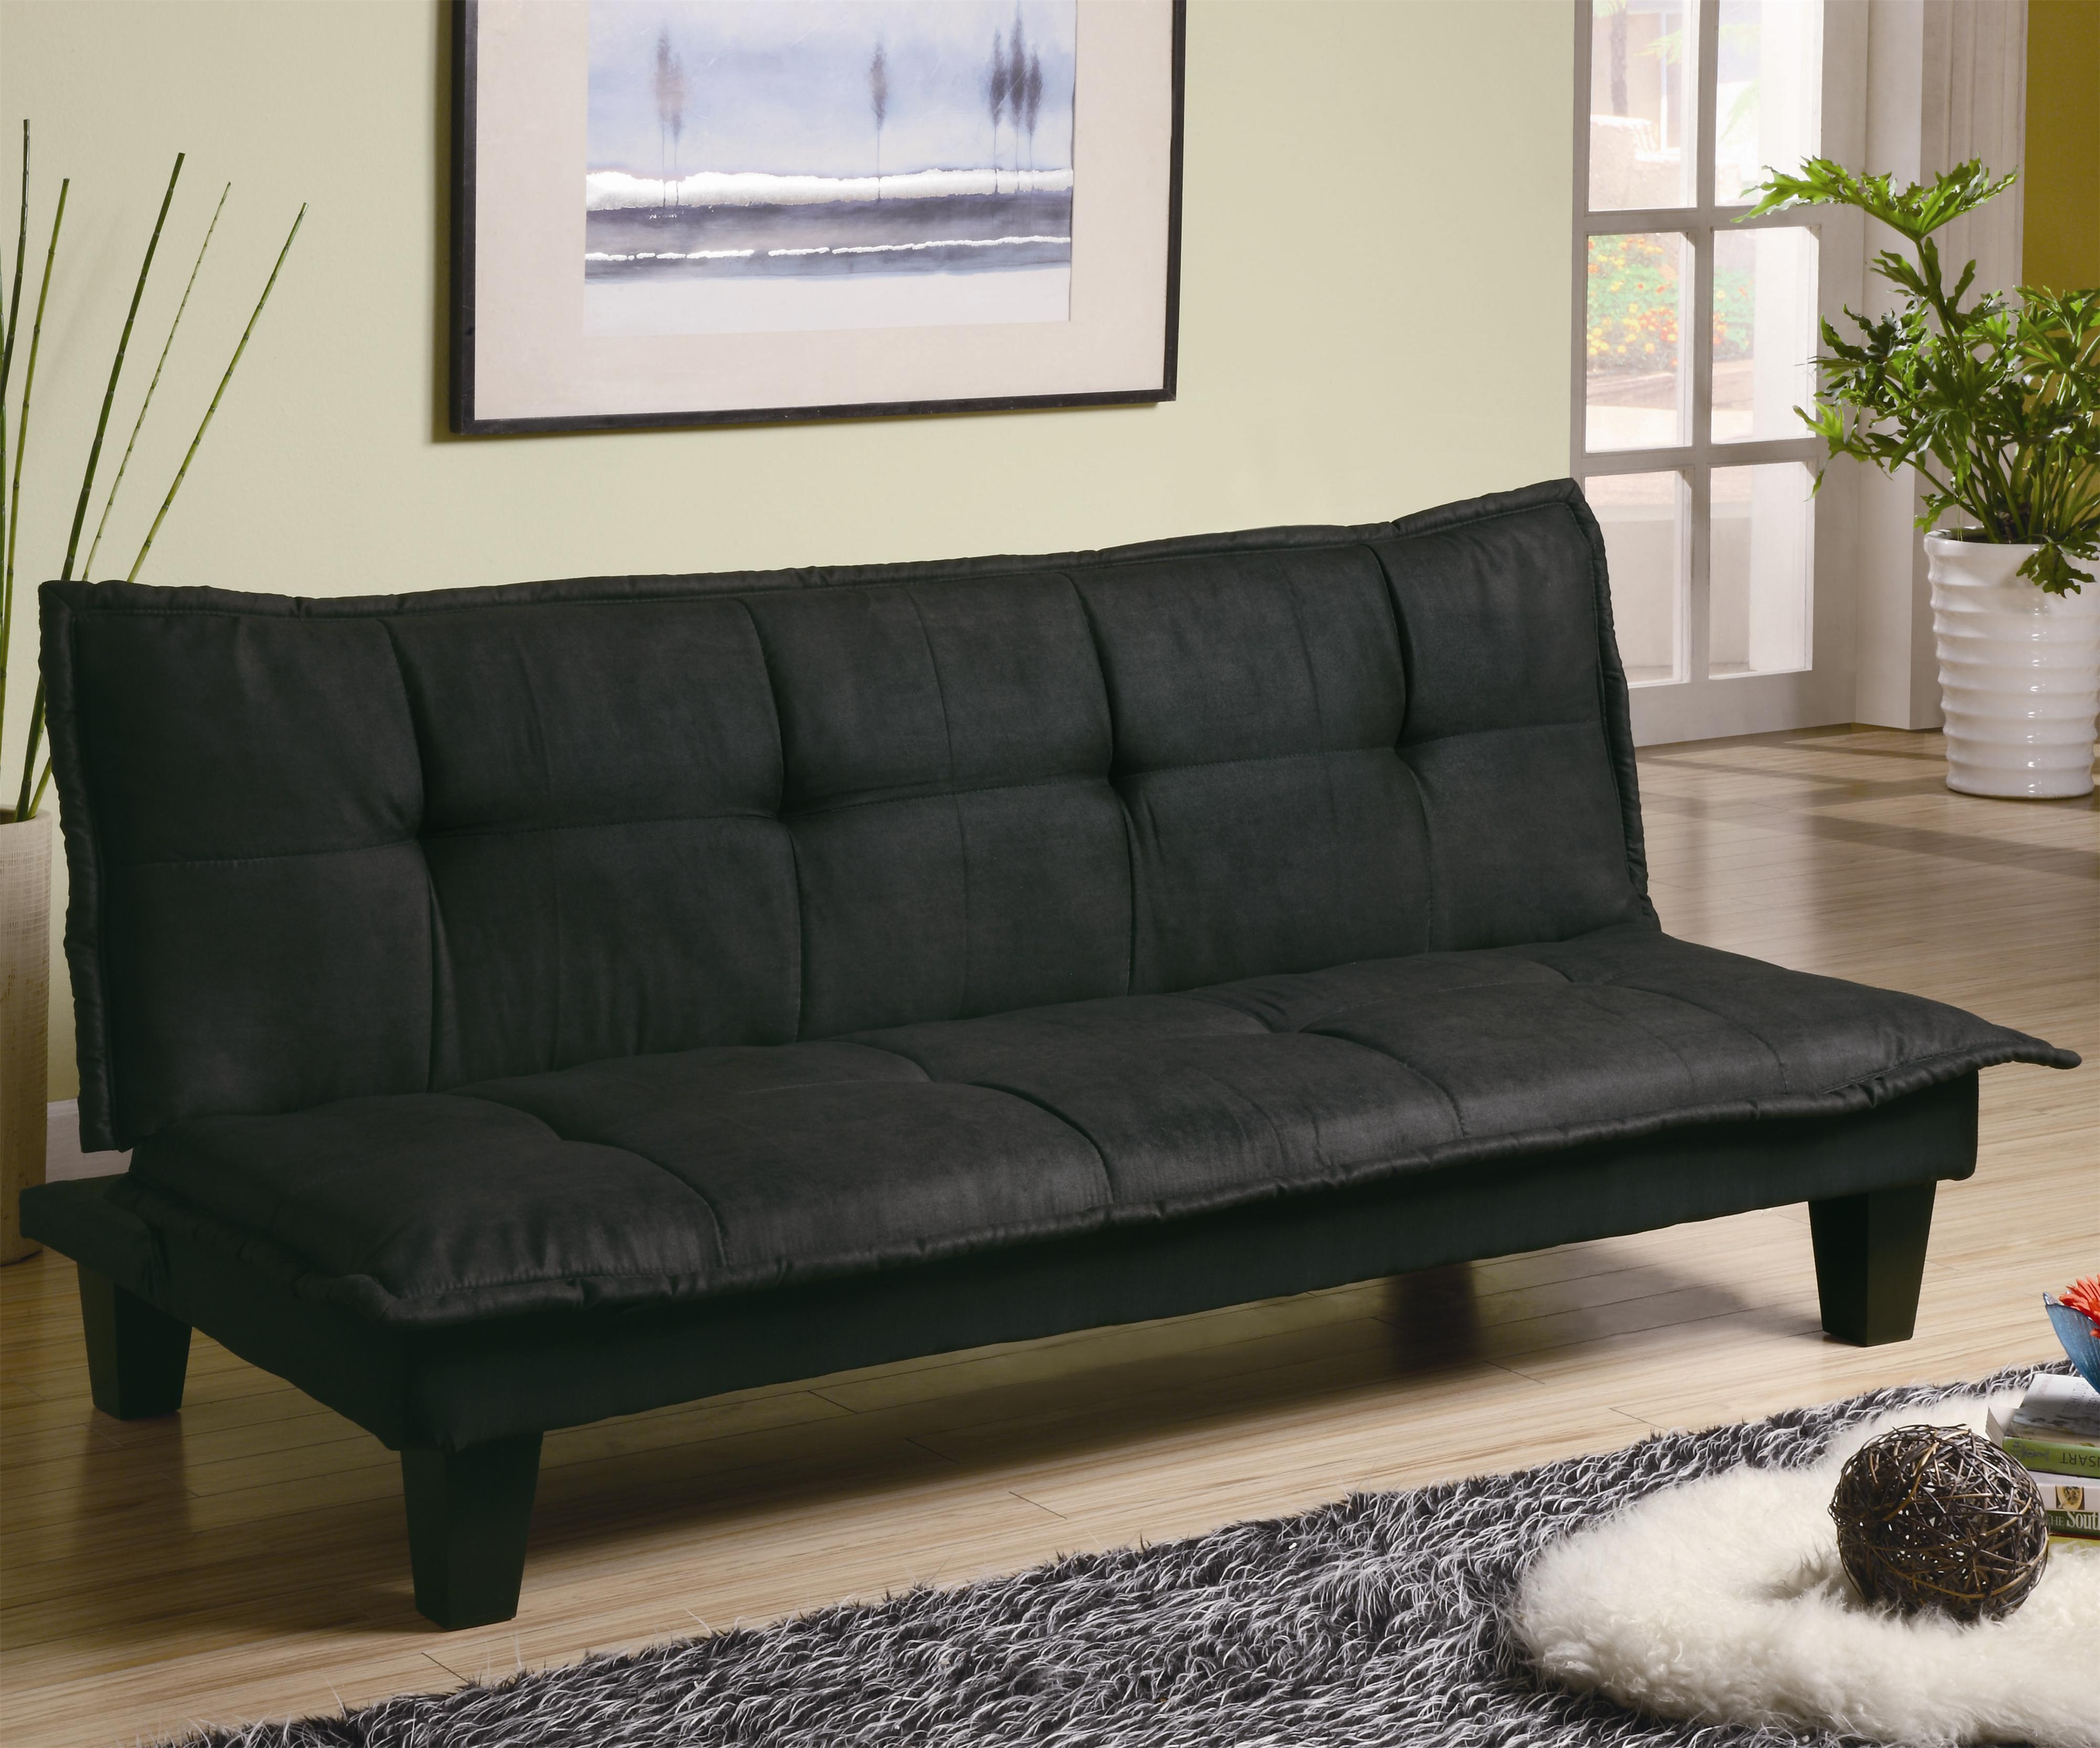 Coaster Sofa Beds and Futons Sofa Bed - Item Number: 300238